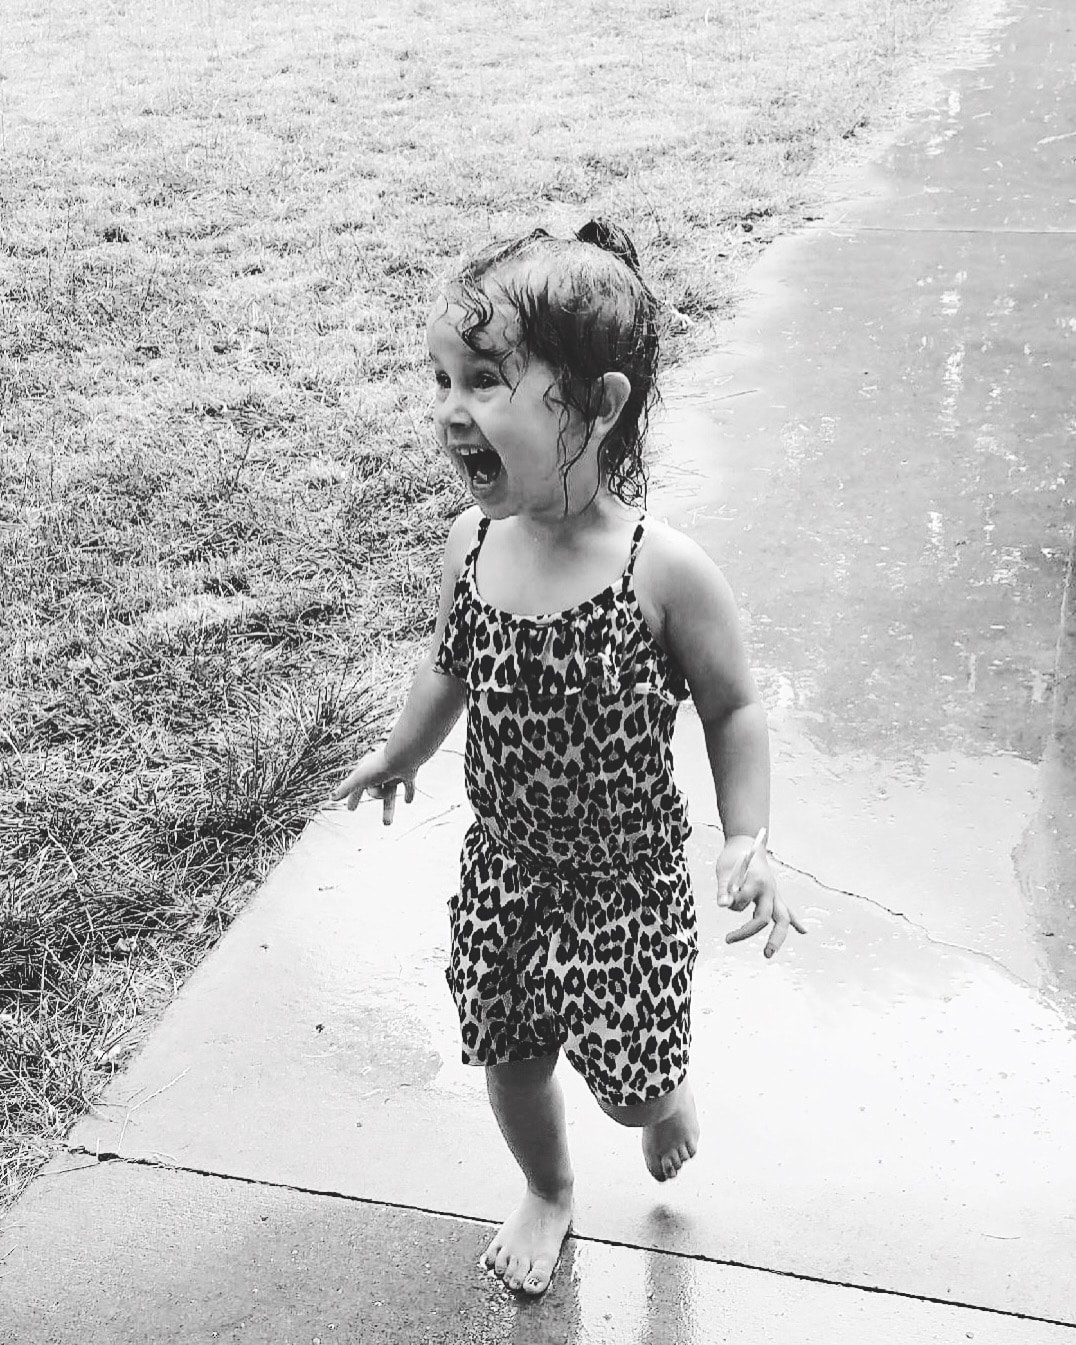 a little girl running and dancing in the rain on a driveway